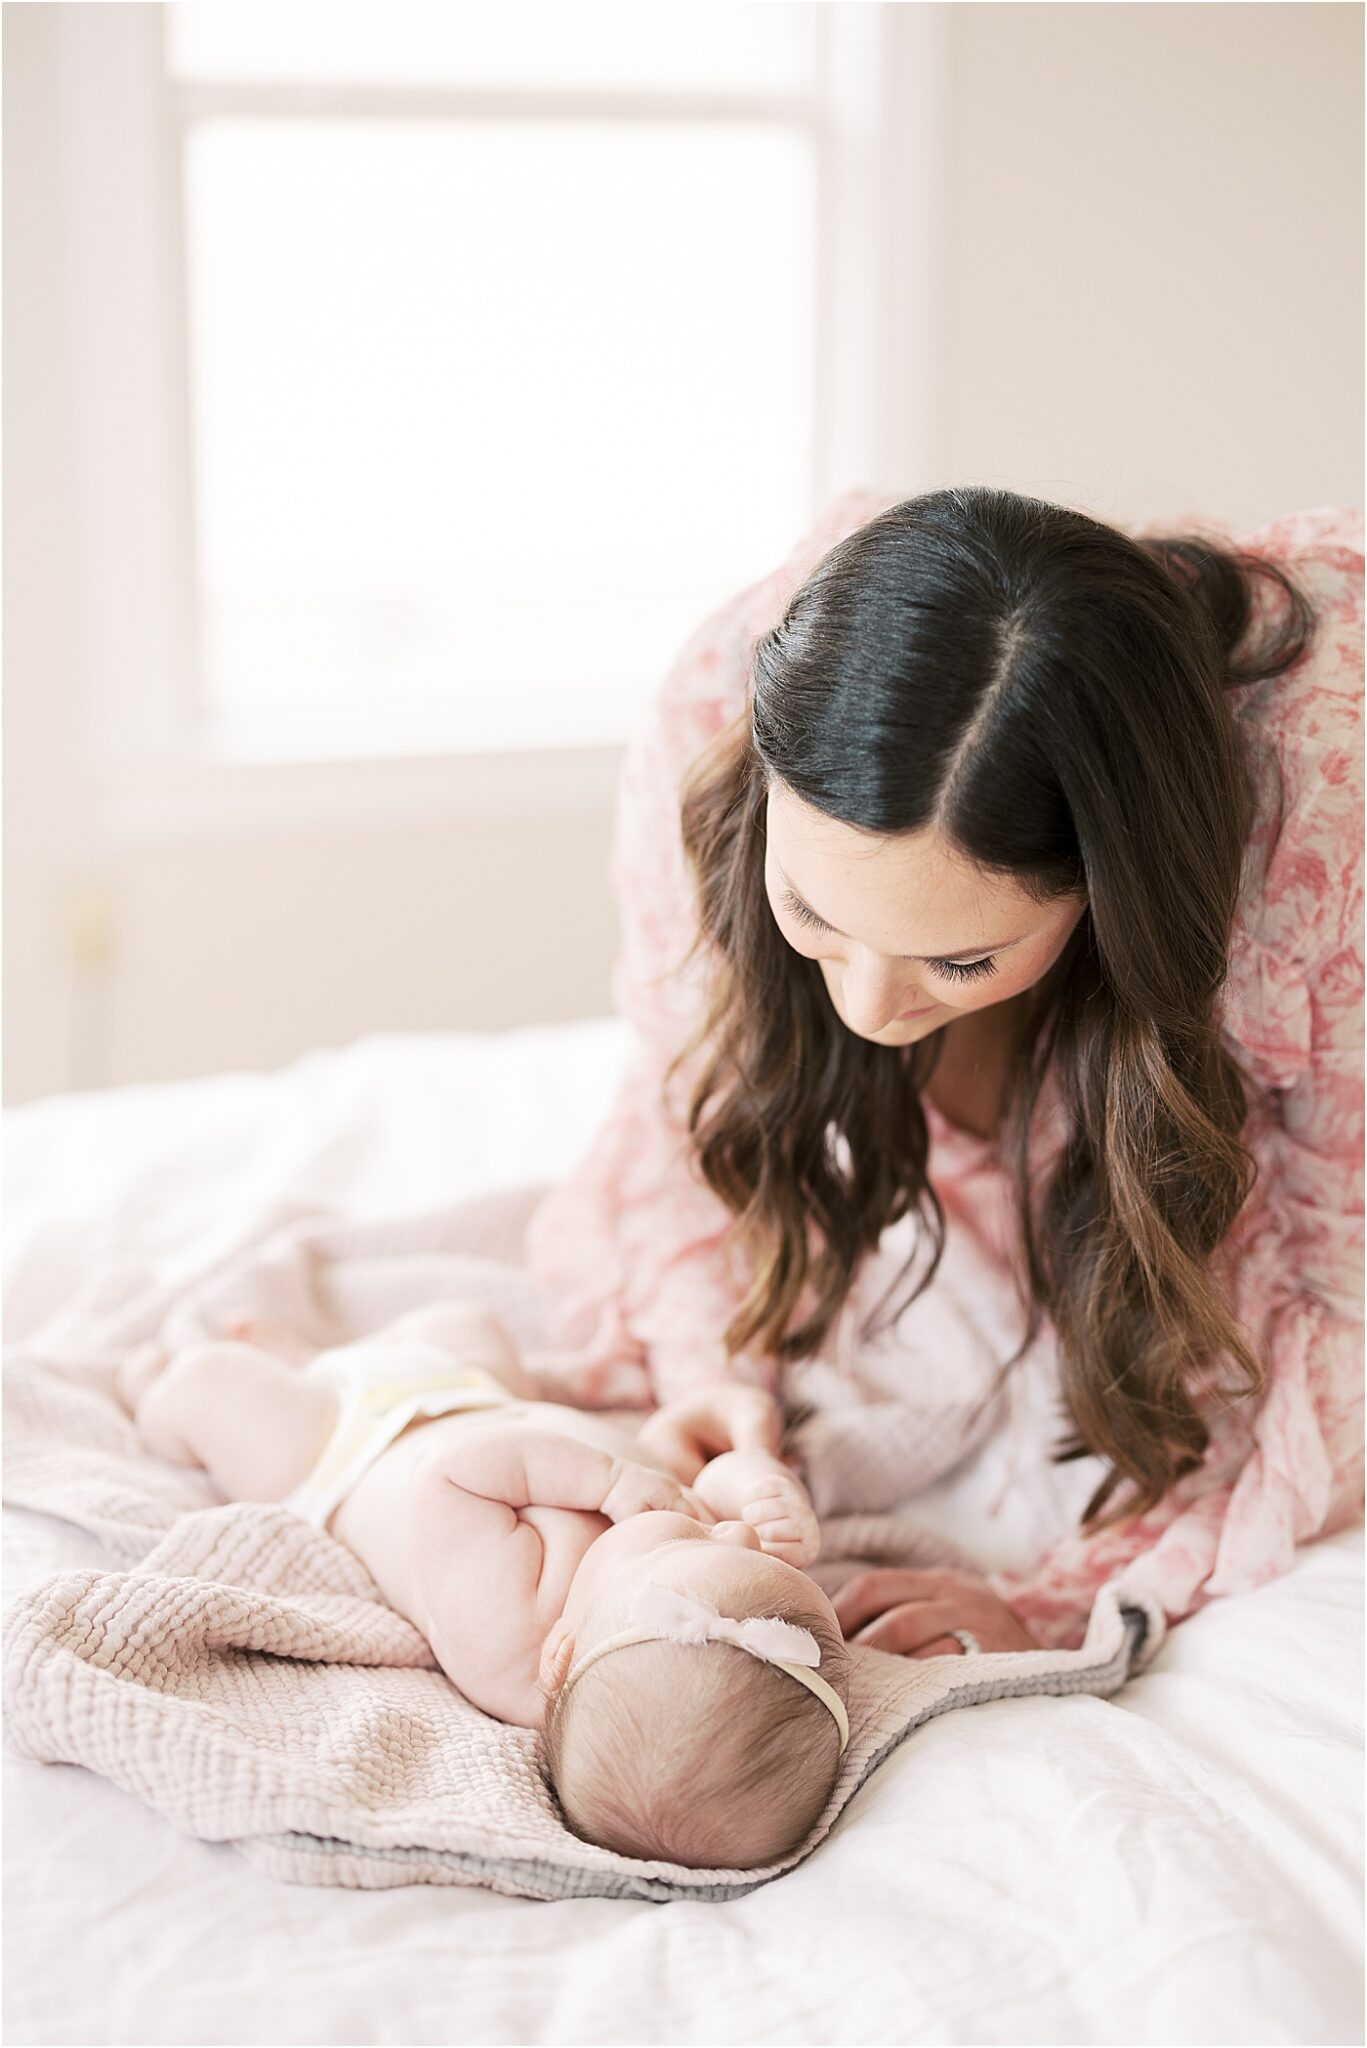 Mom looking at baby girl laying on bed during in-home lifestyle newborn session. Photo by Lindsay Konopa Photography.